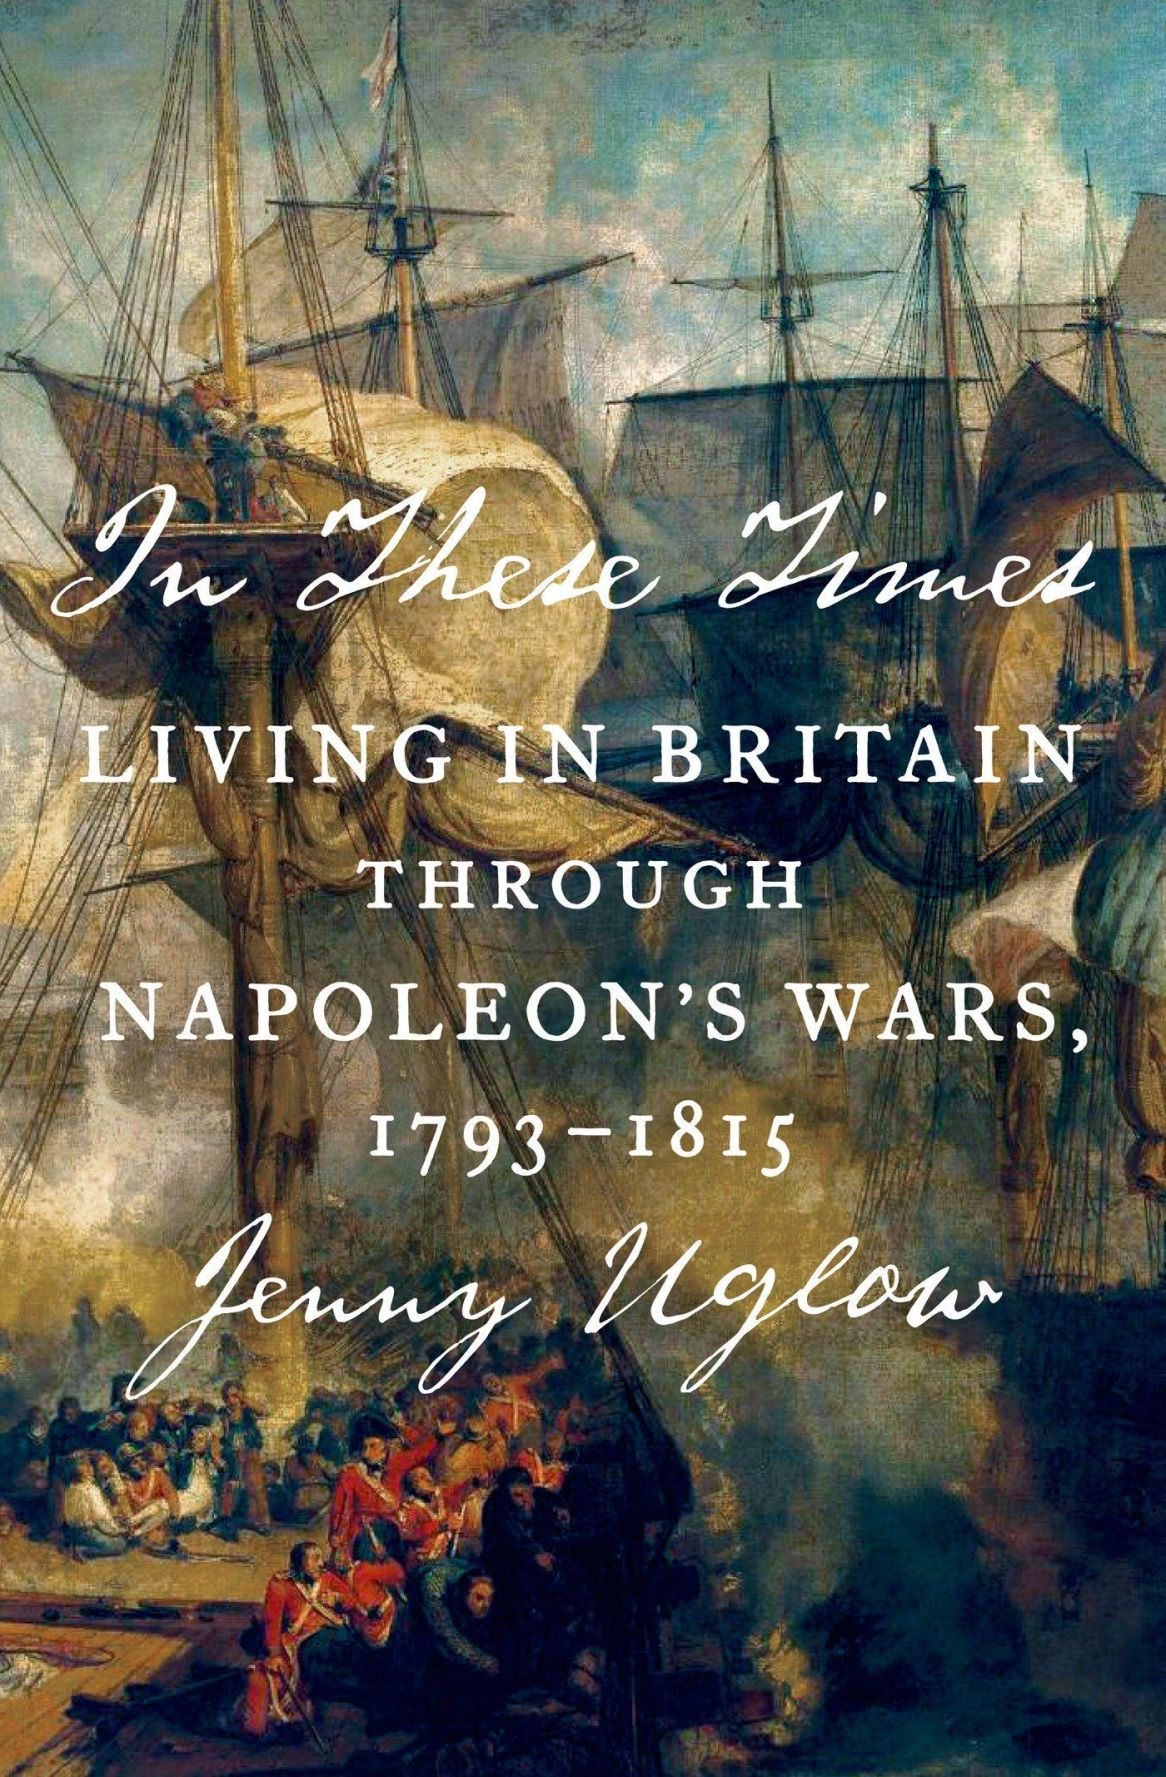 Book an enthusiastic telling of Napoleon's effect on Britain